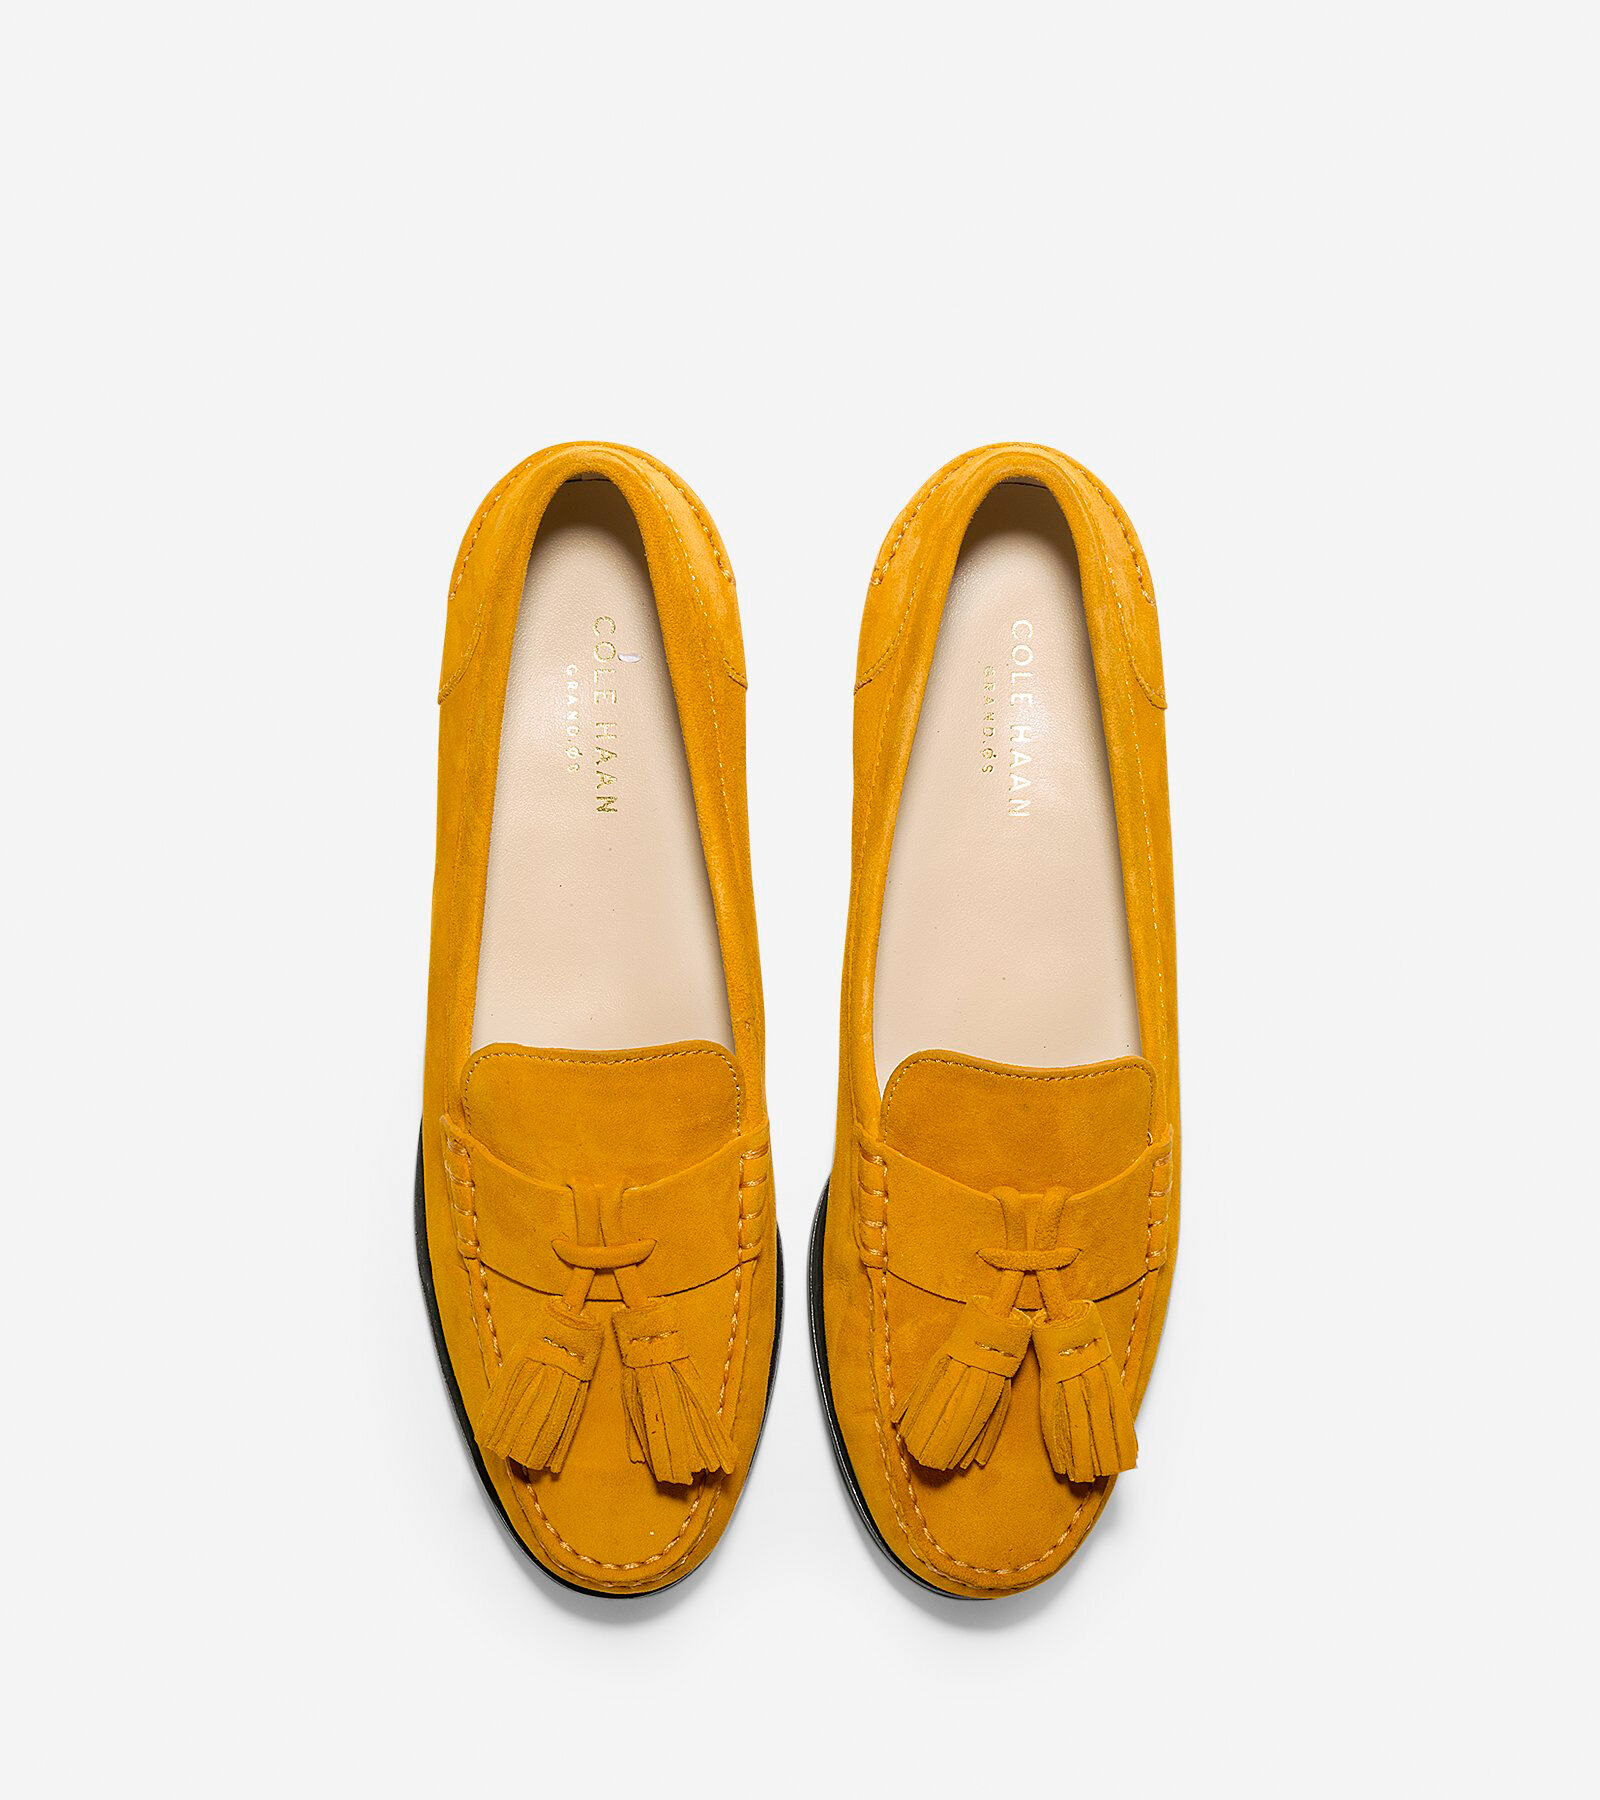 551de171fb59 Womens emmons tassel loafers in inca gold cole haan jpg 2000x2250 Loafers  with gold